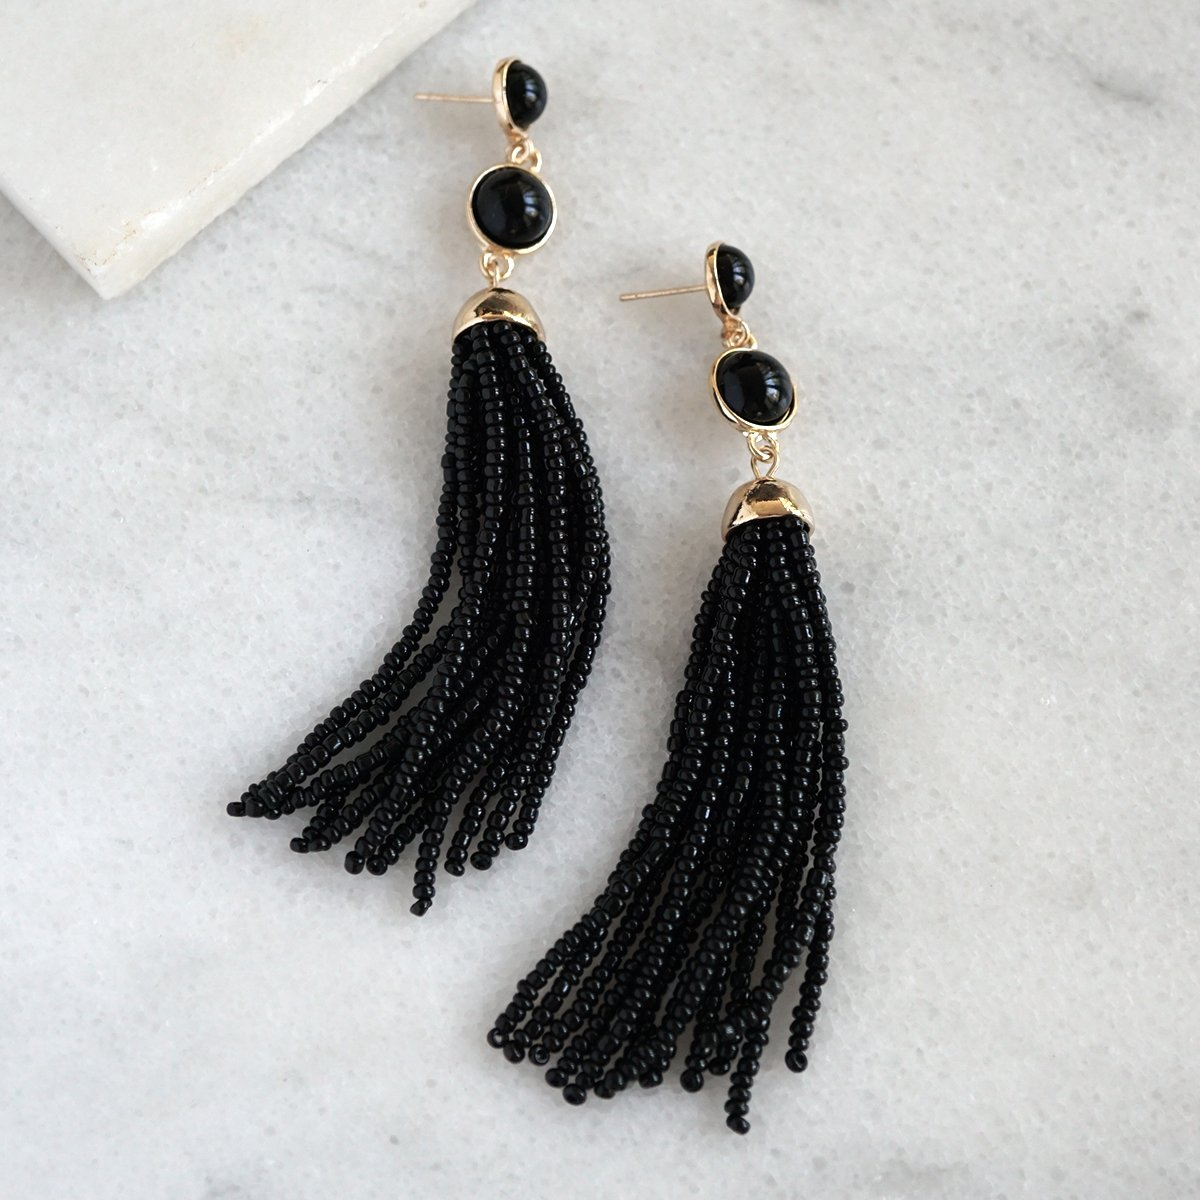 Beaded tassel earrings in black Beaded tassel earrings